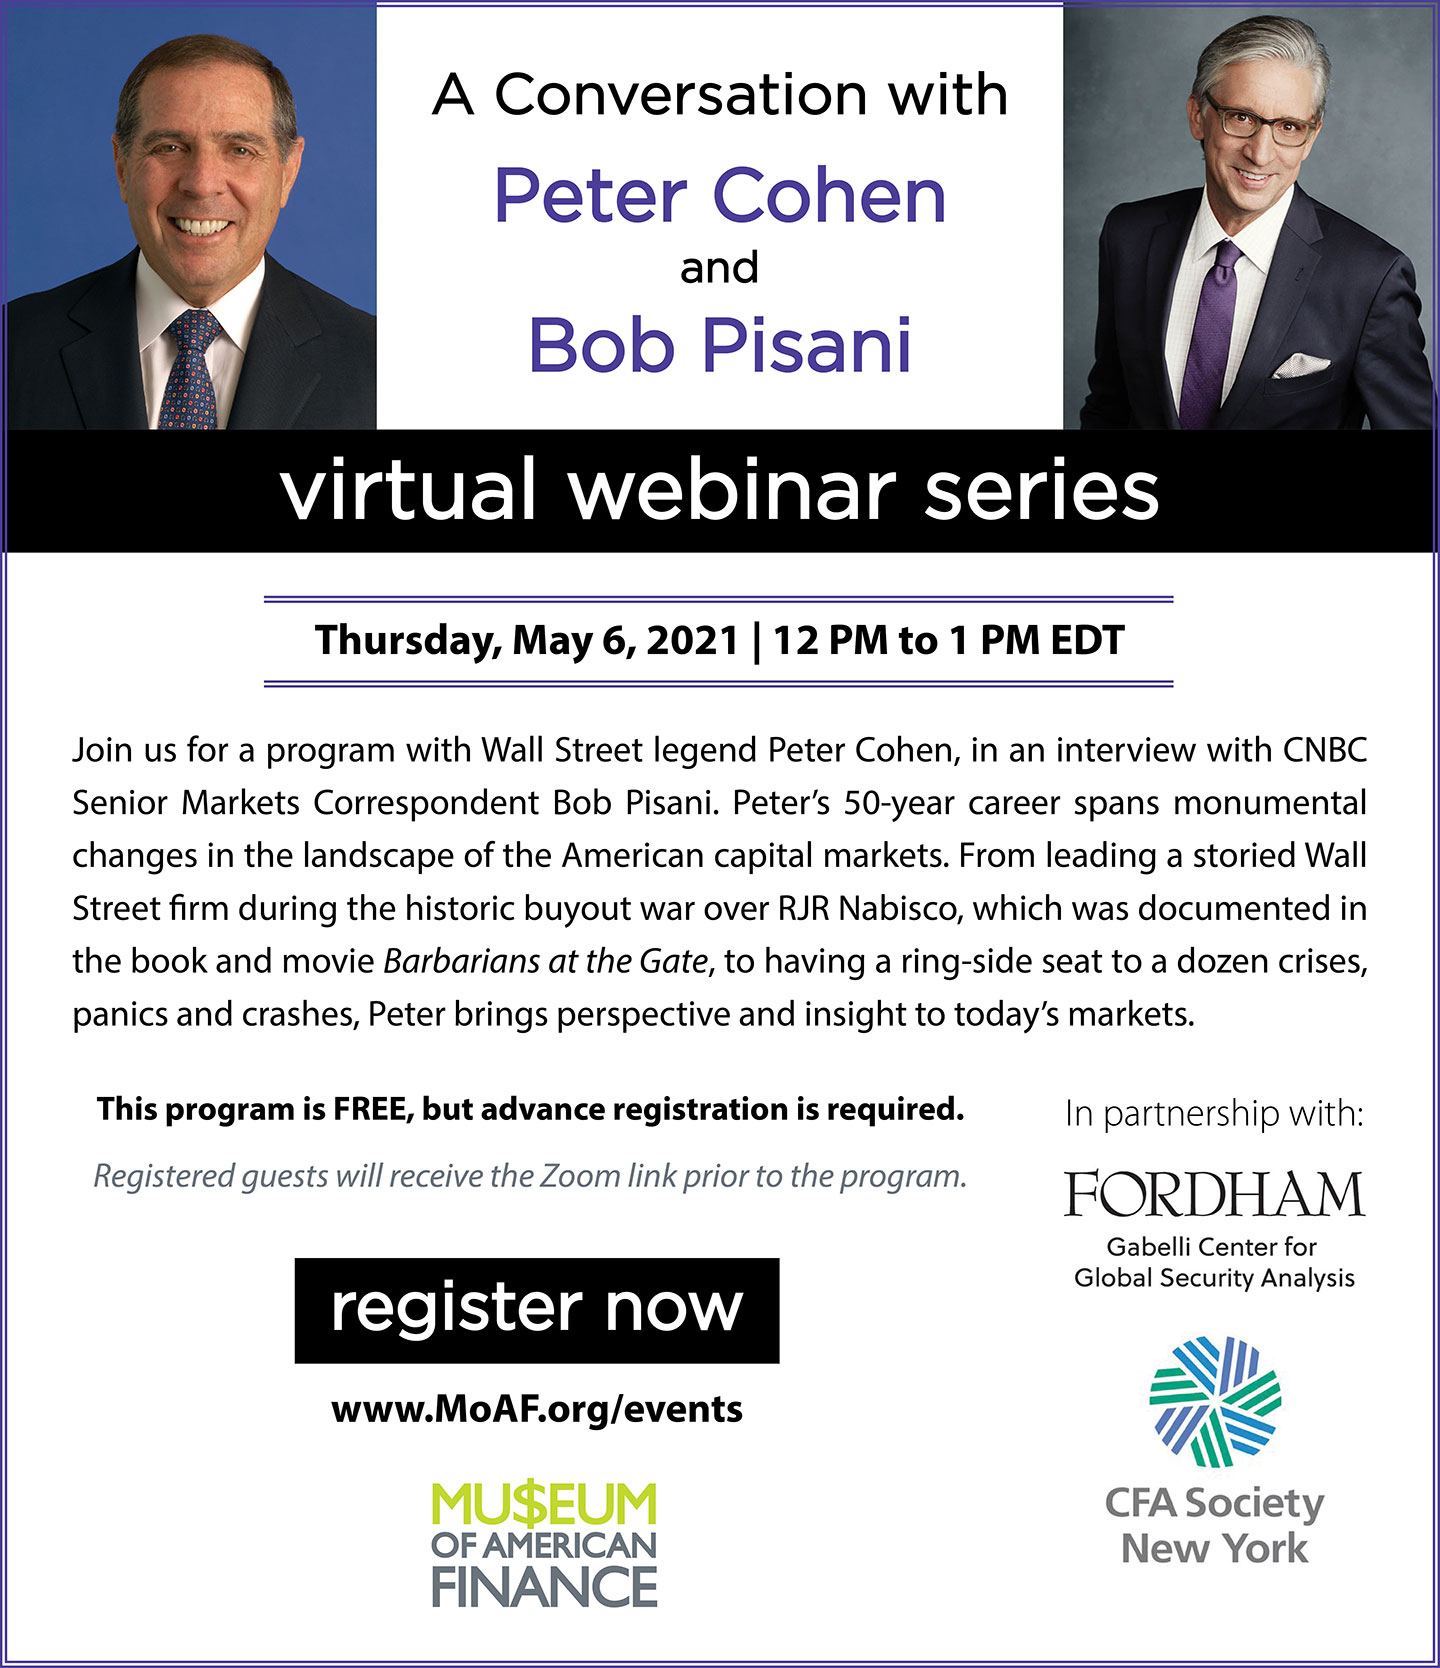 Conversation with Peter Cohen and Bob Pisani